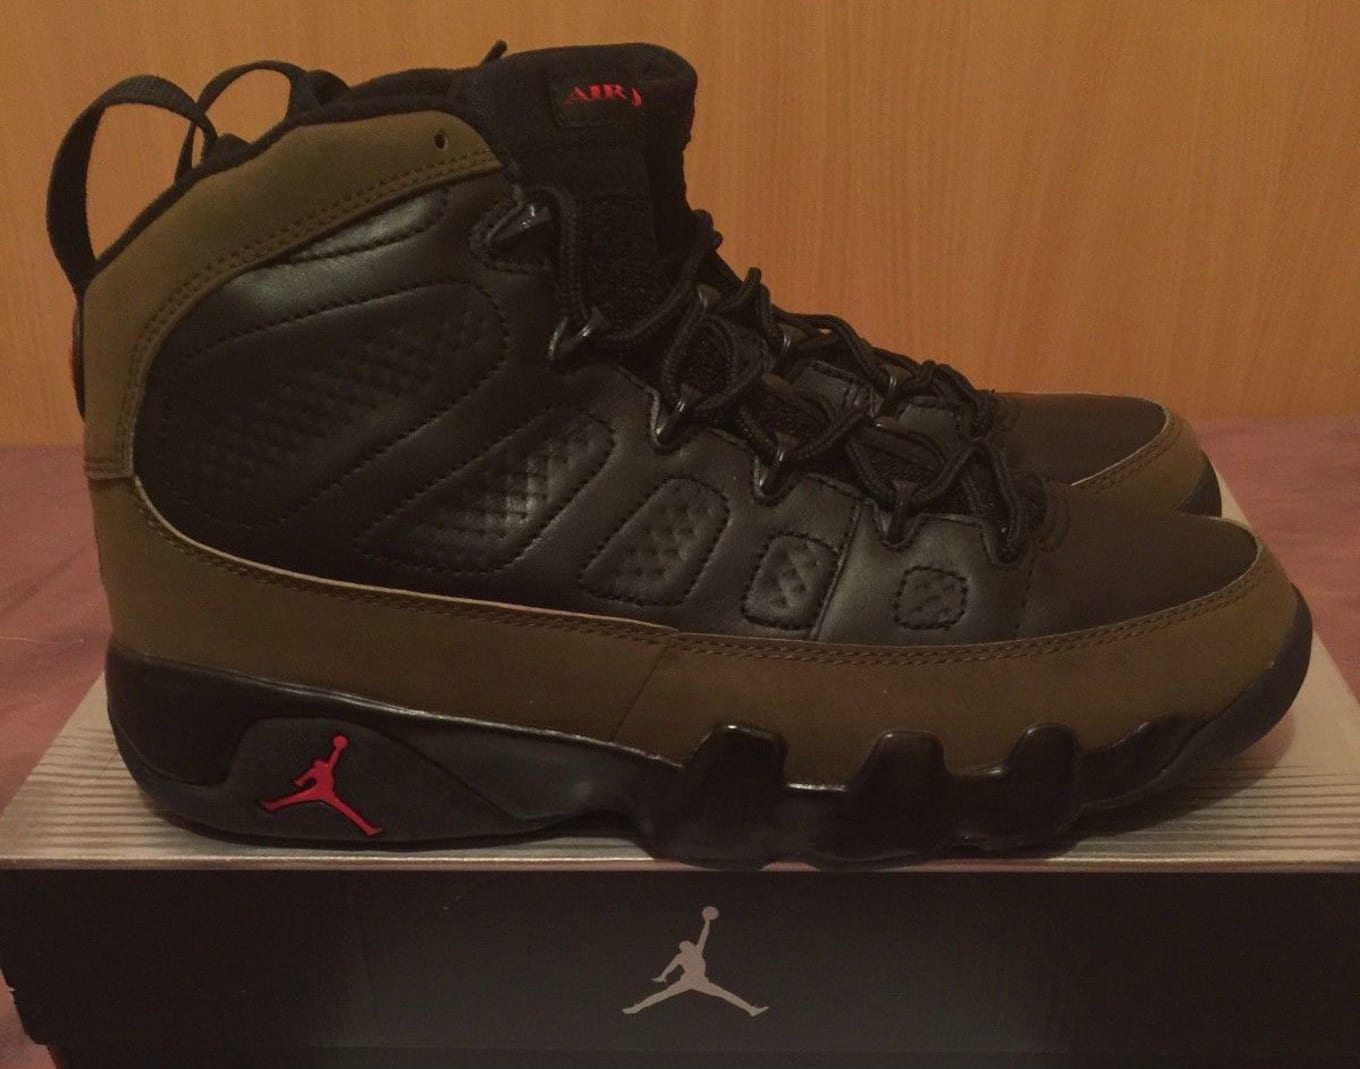 25d1fec236a4ee 20 Deadstock Air Jordans From the 2000s You Can Grab on eBay